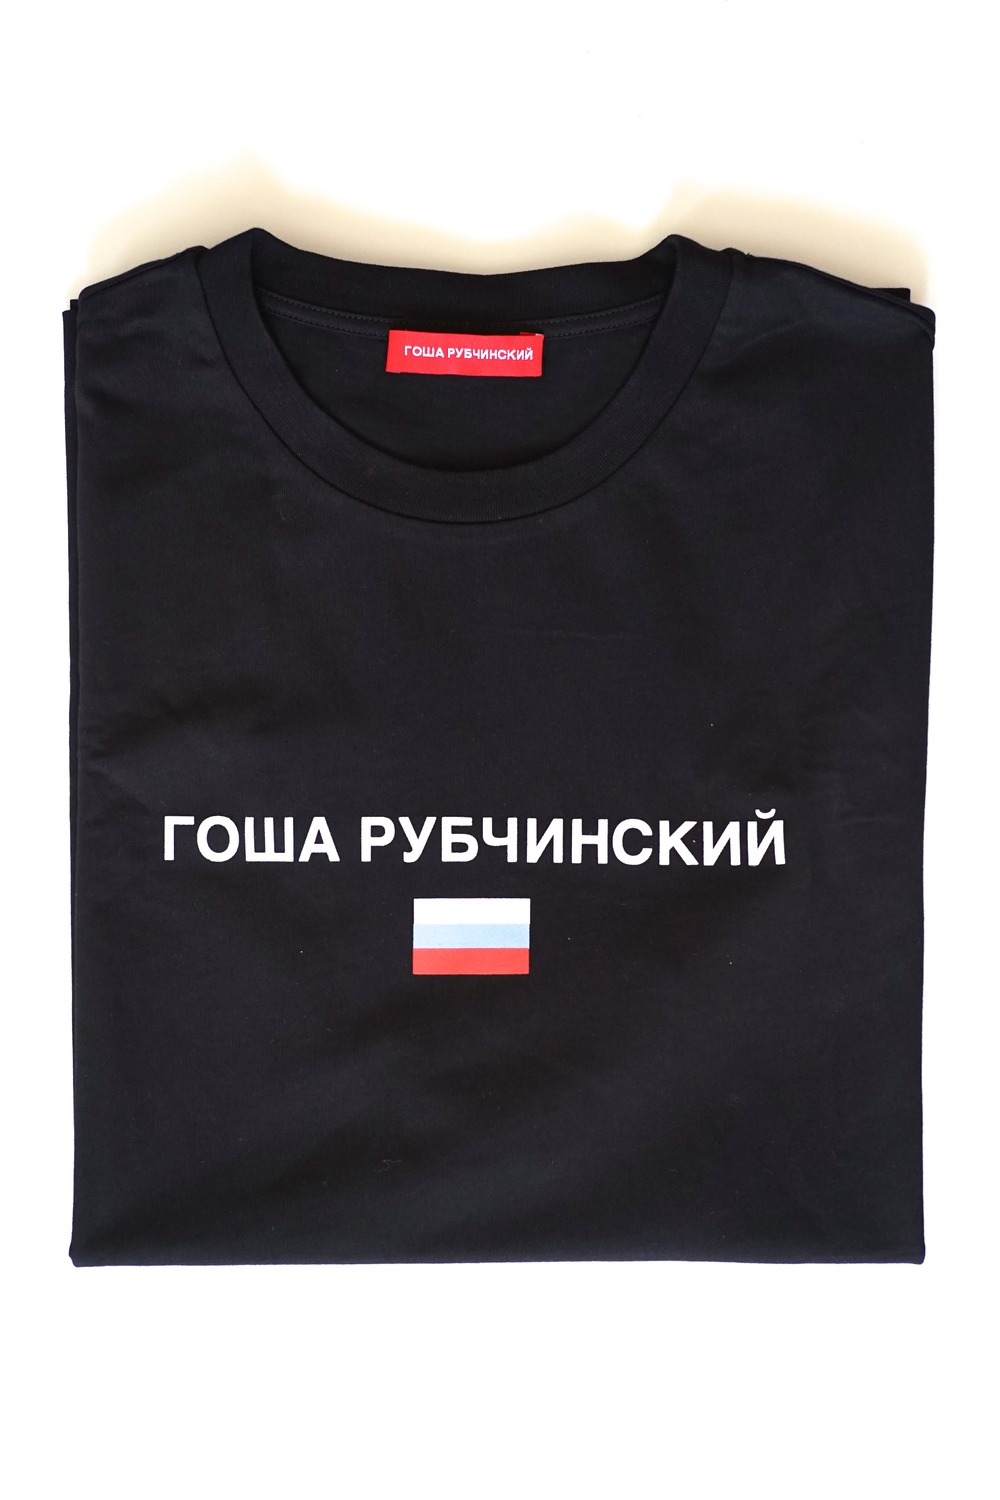 Black t shirt large - Gosha Rubchinskiy Large Flag Ss16 T Shirt Tee Black Xl Photo 1 1